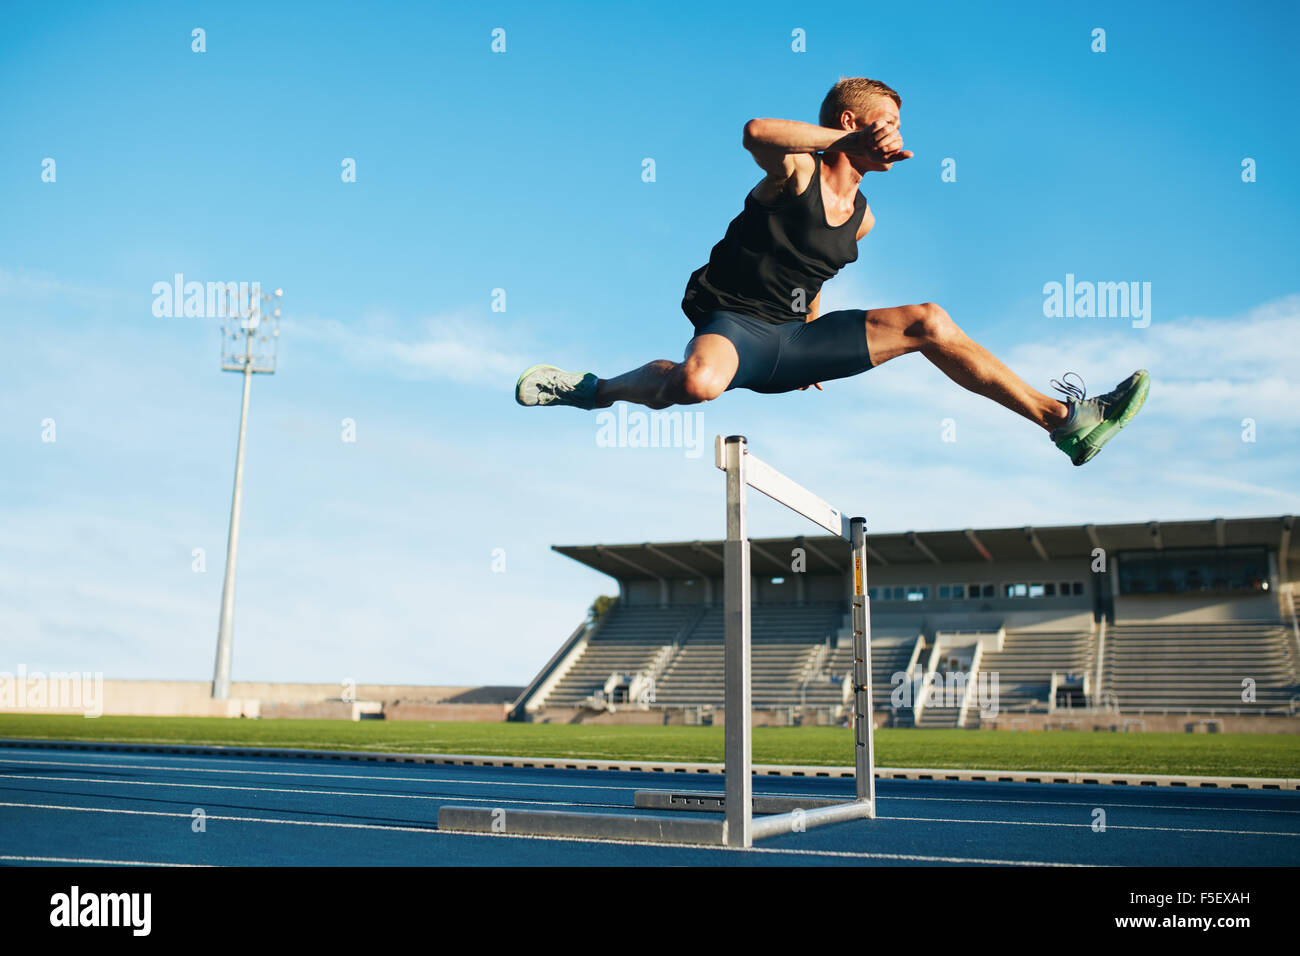 Professional male track and field athlete during obstacle race. Young athlete jumping over a hurdle during training - Stock Image